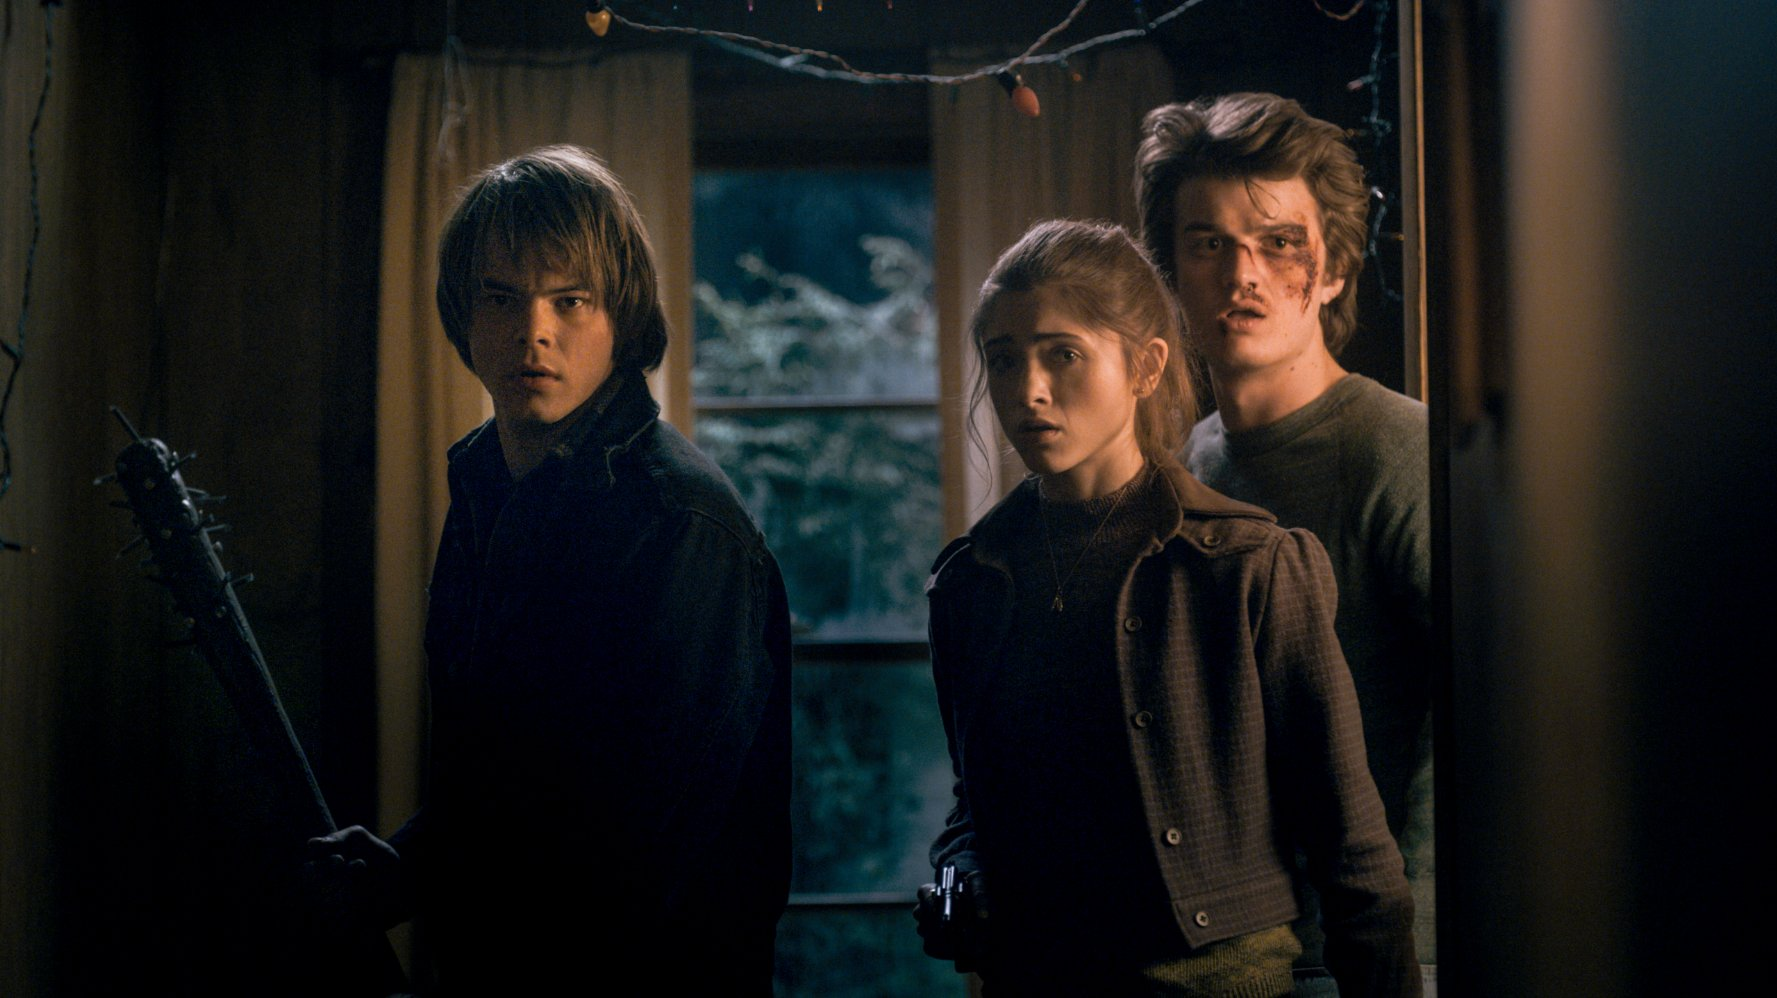 Charlie Heaton as Jonathan Byers, Natalia Dyer as Nancy Wheeler, and Joe Keery as Steve Harrington in STRANGER THINGS (2016)